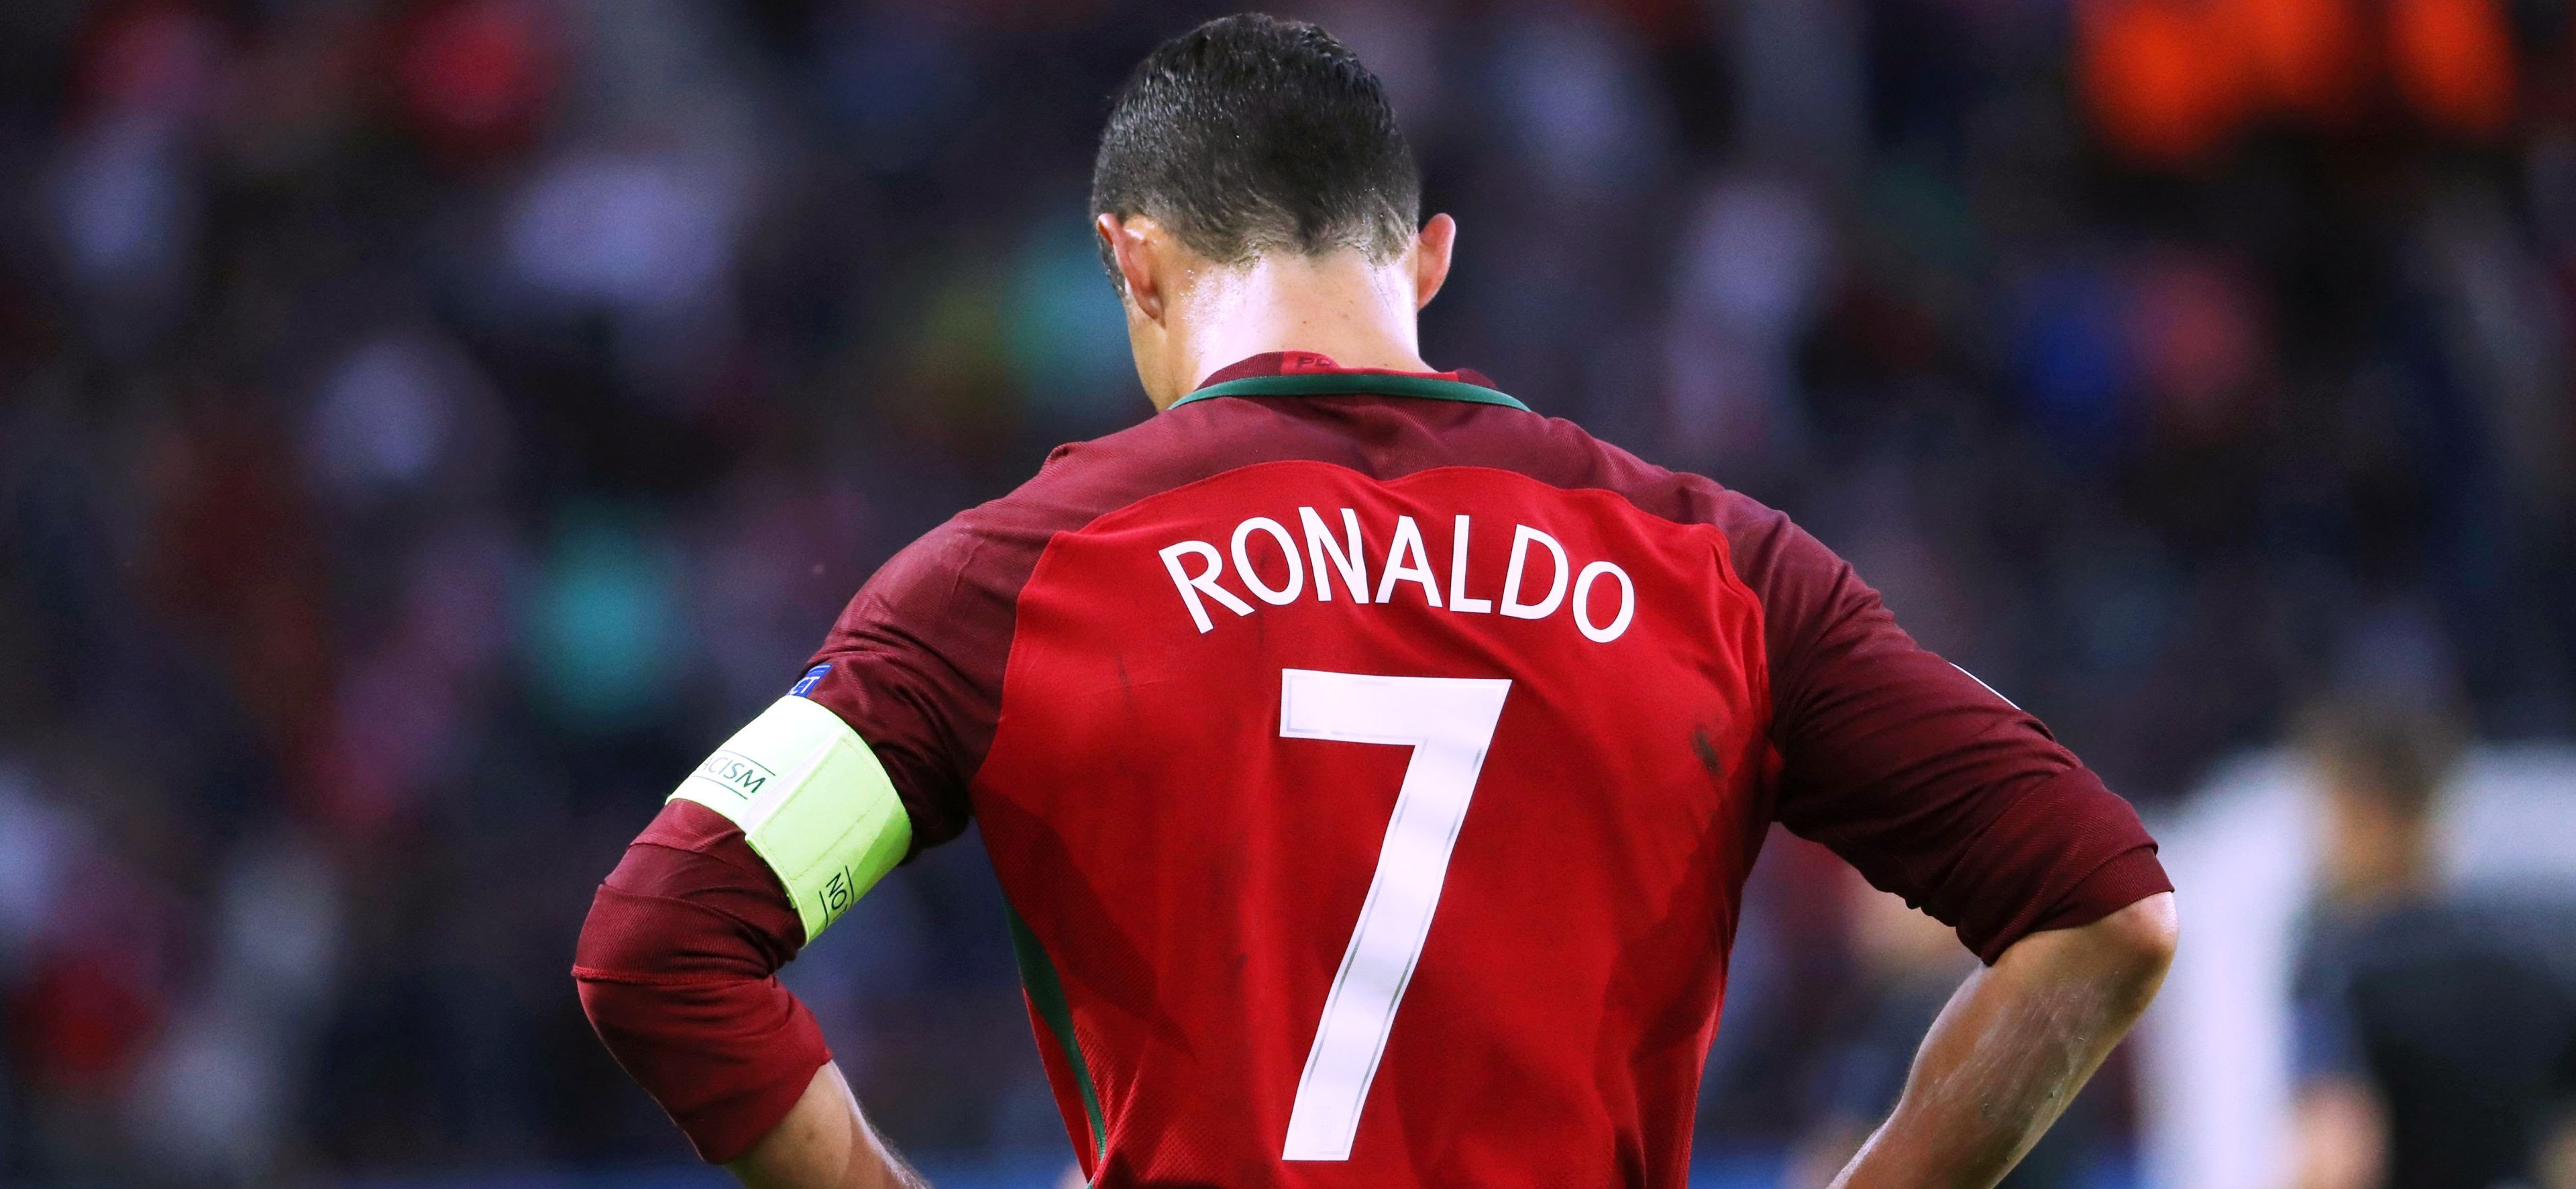 Juventus Turin's forward Cristiano Ronaldo followed in footsteps of Lionel Messi and suspended his performance for the national team in 2018, O Jogo newspaper reports